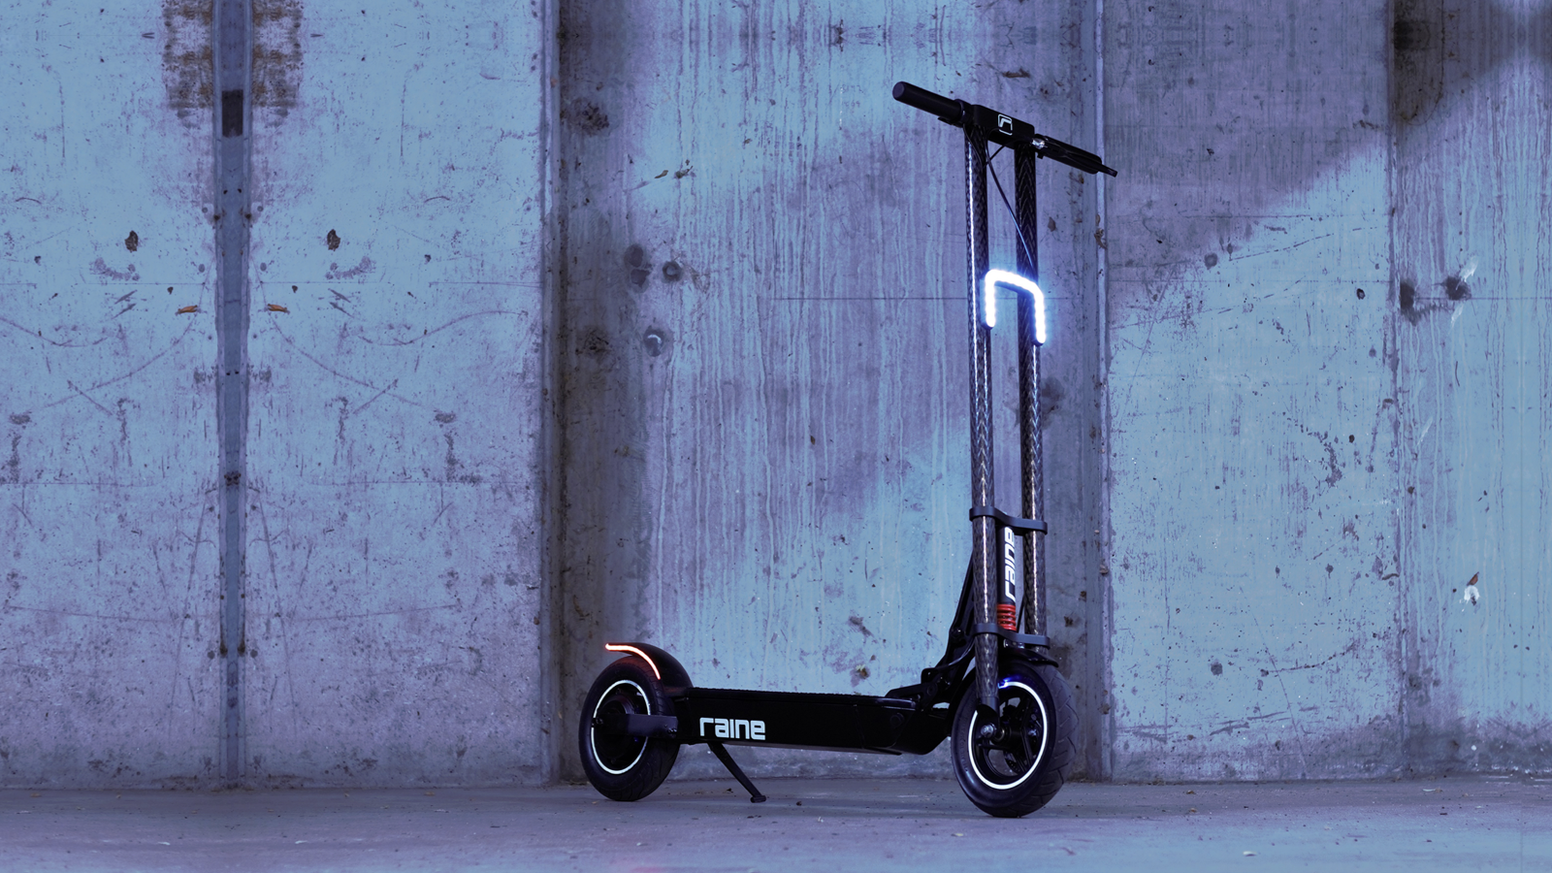 Smart, safe and connected, with night and day lighting - a scooter designed just for you and your journey.